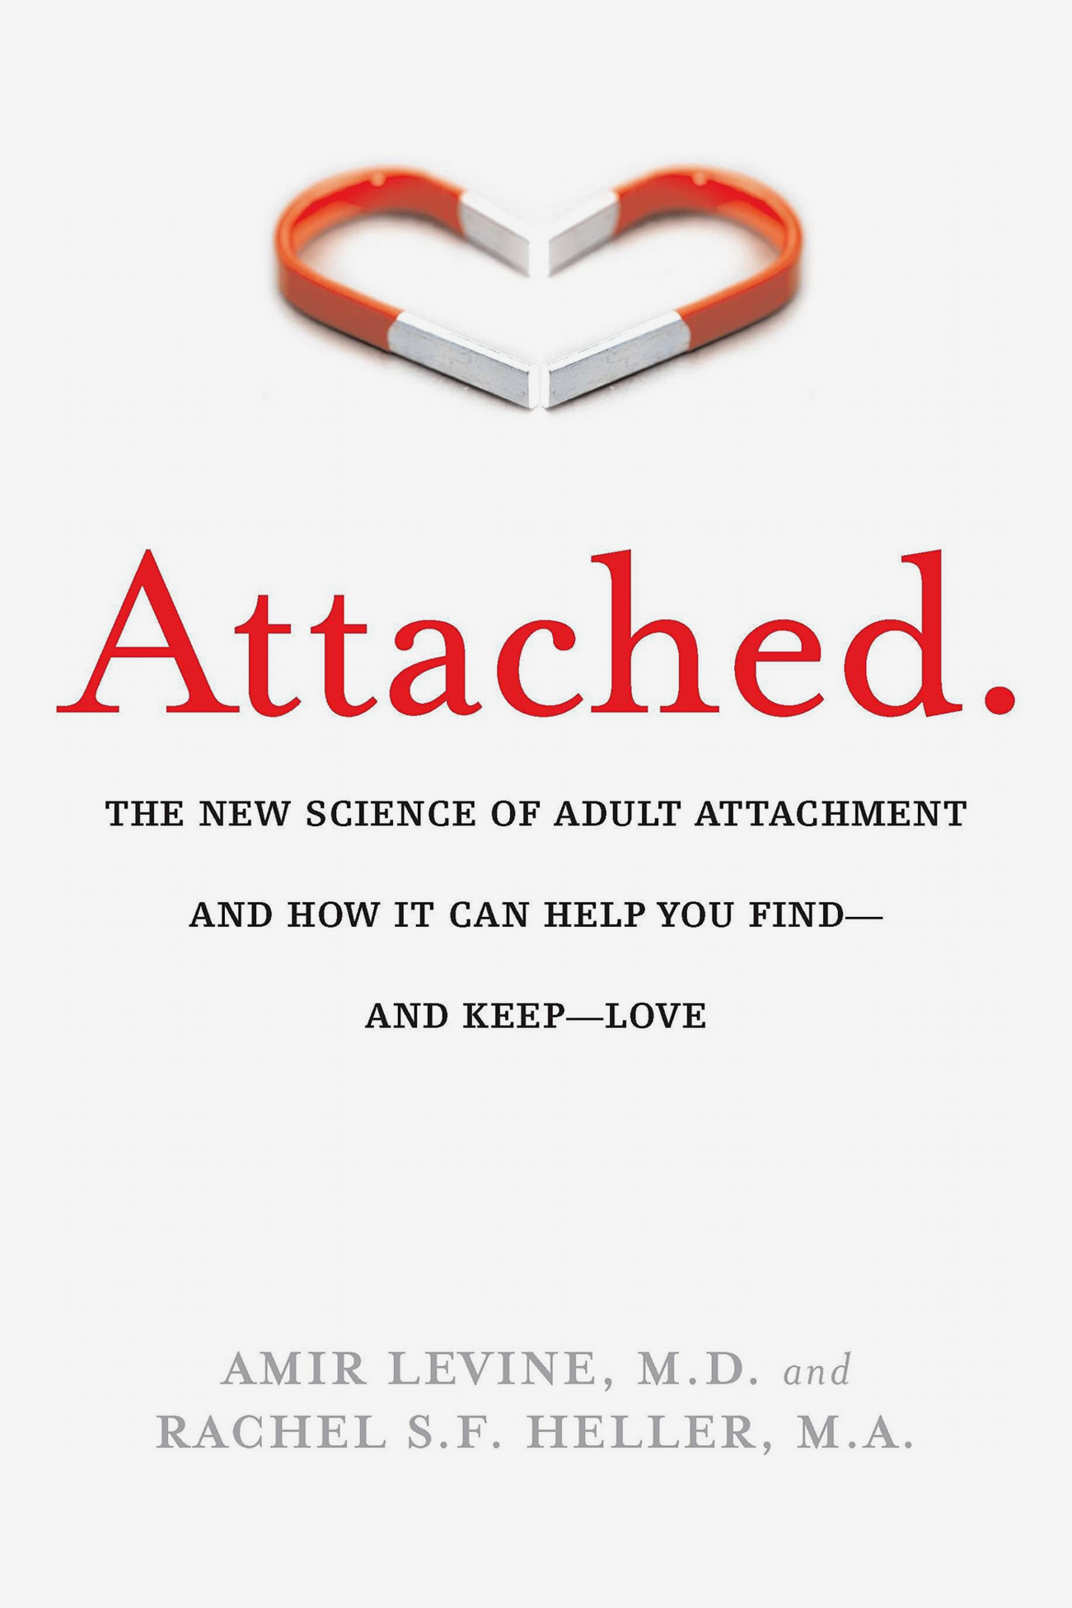 Attached: The New Science of Adult Attachment and How It Can Help You Find — and Keep — Love by Amir Levine and Rachel S.F. Heller